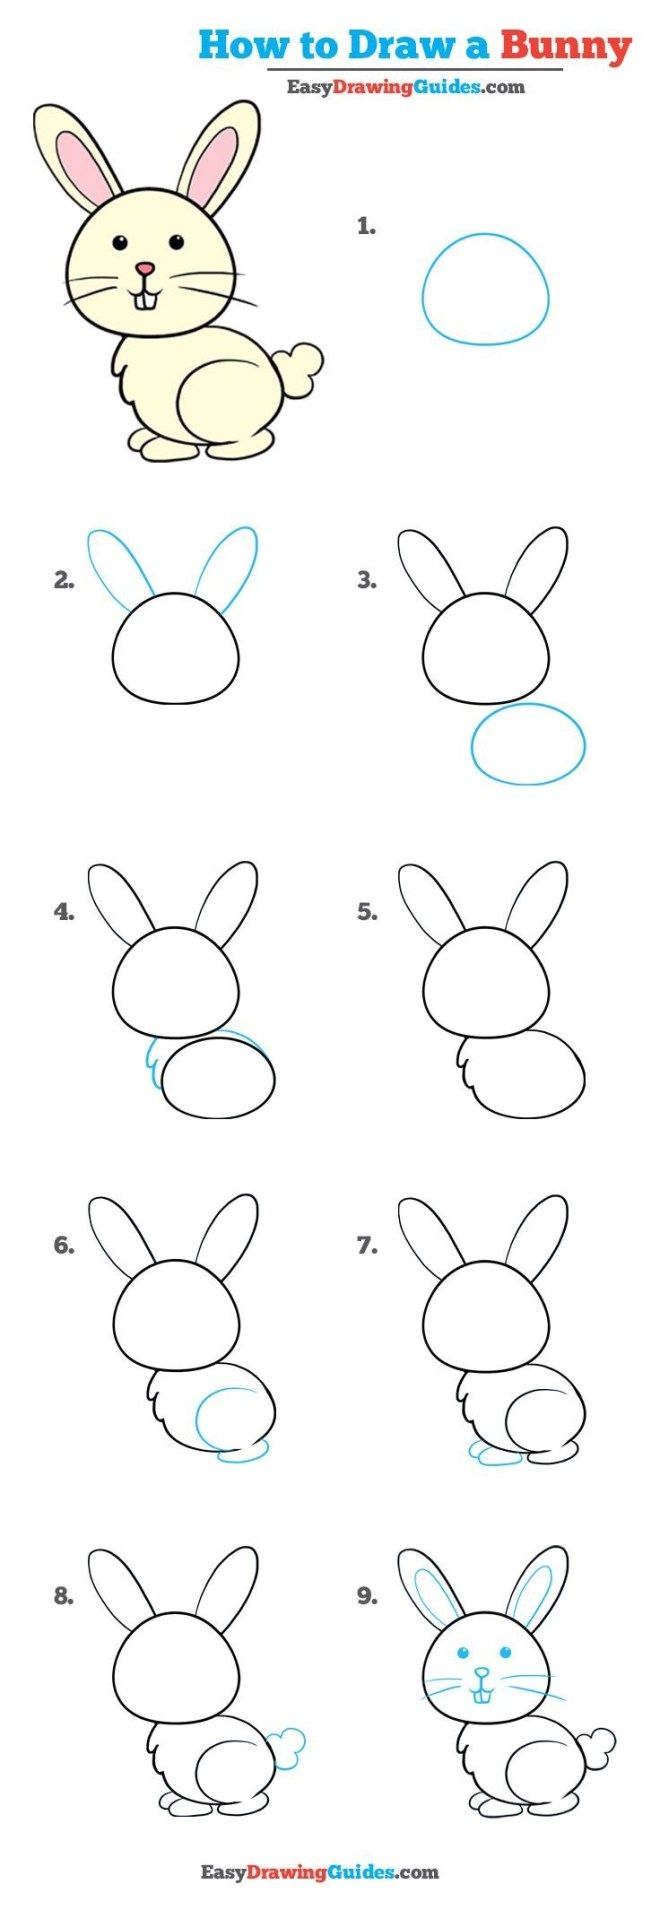 10 Cartoon Animal How To Drawings – Brighter Craft